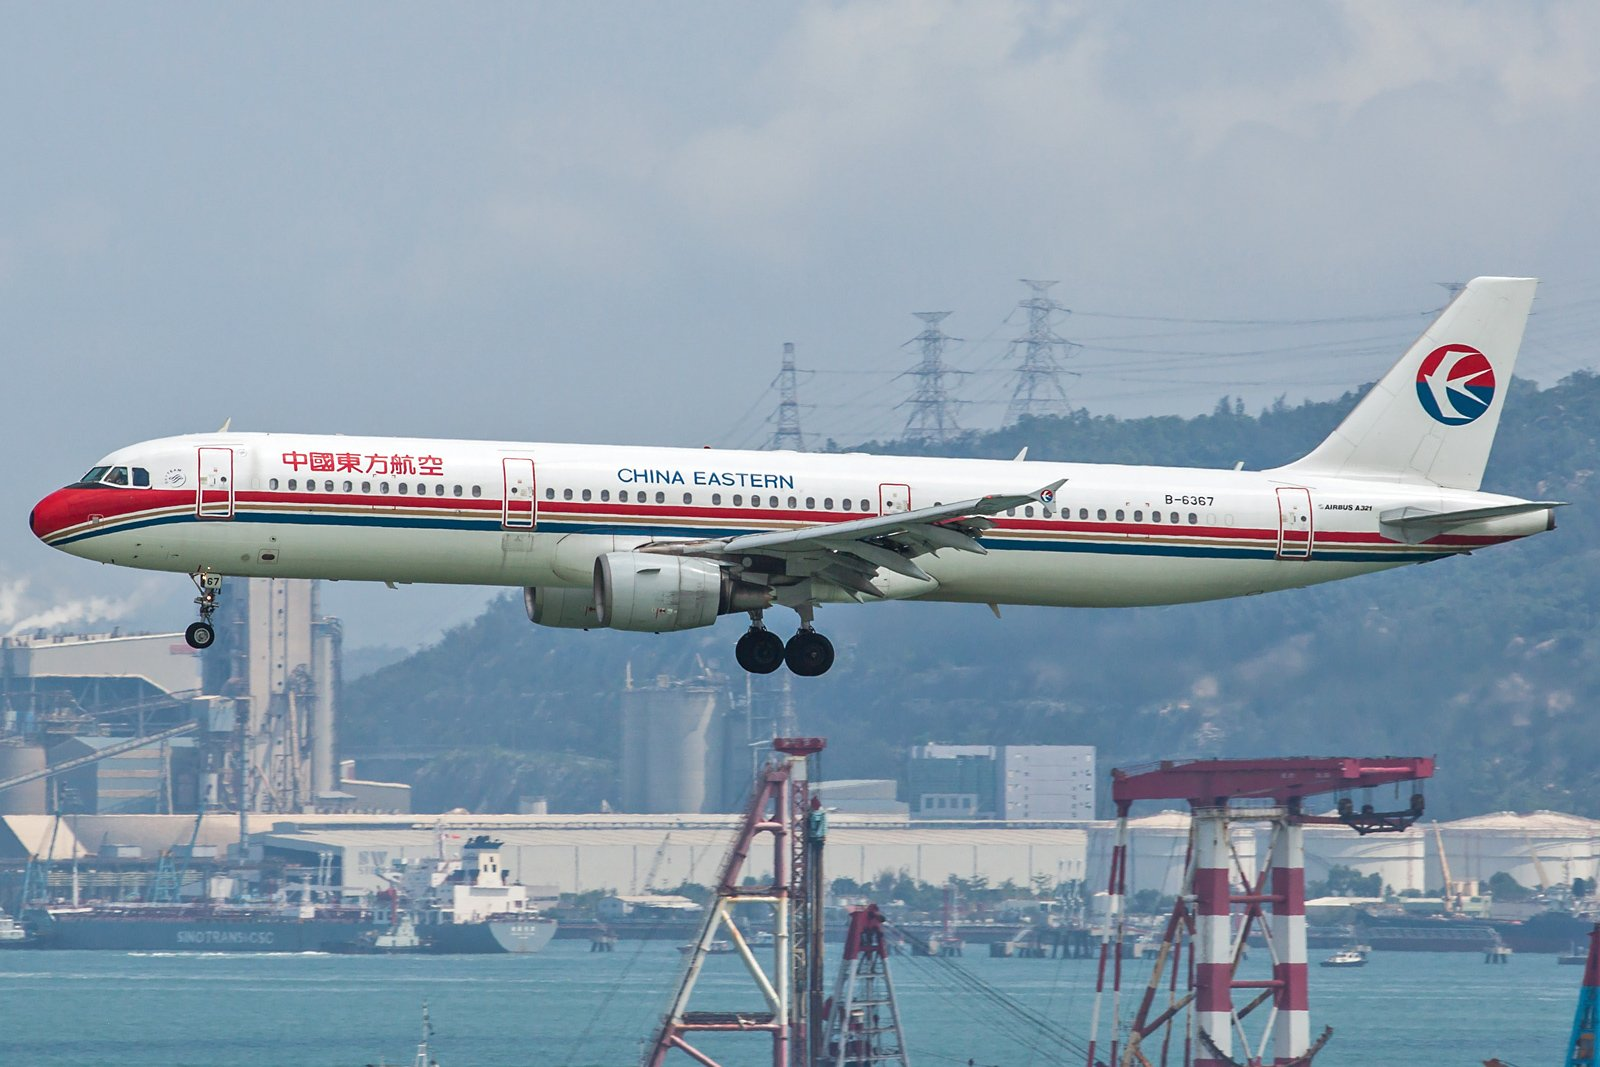 China Eastern Airlines Airbus A321-211 B-6367